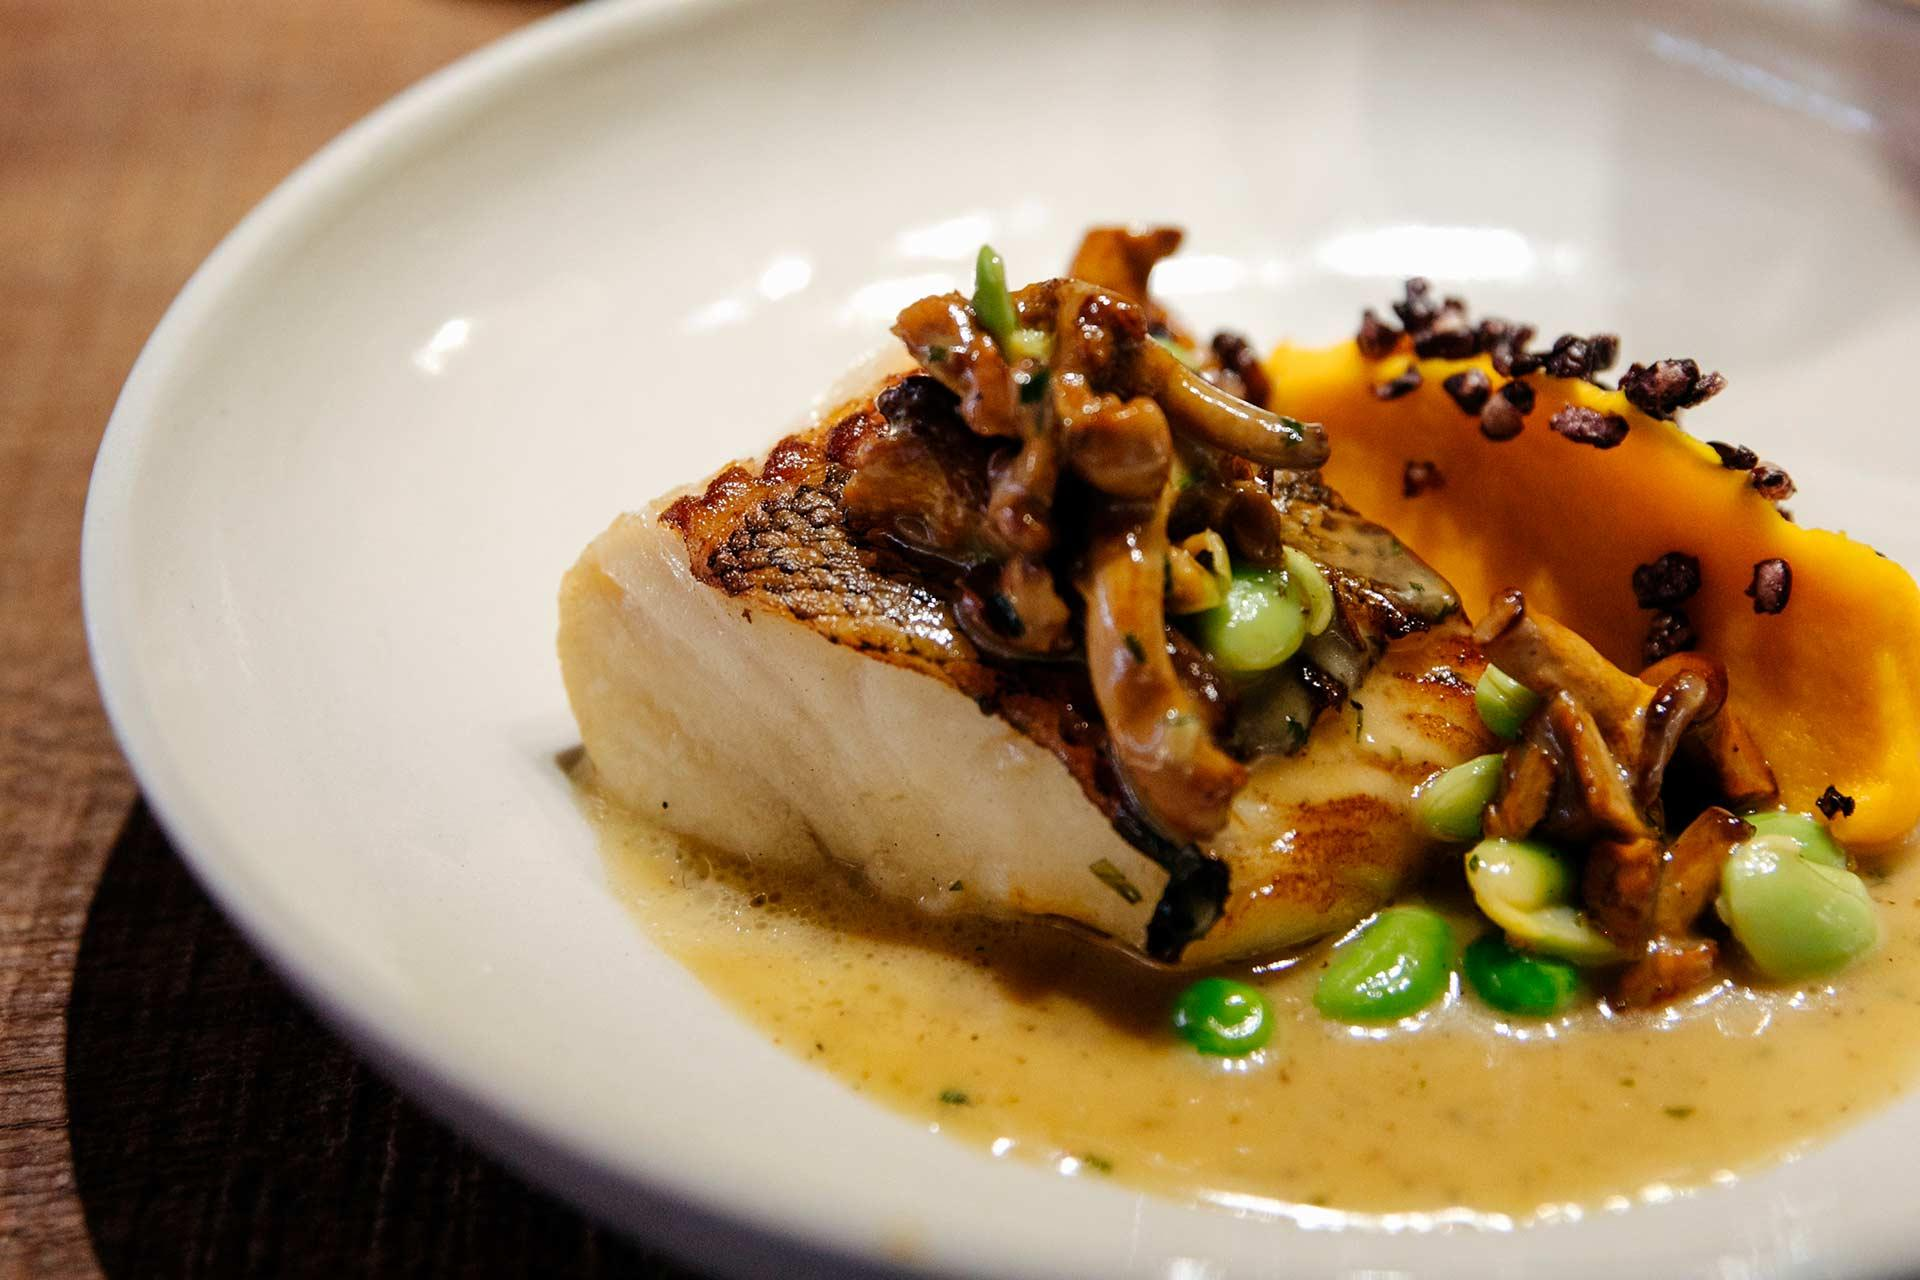 Patagonian toothfish, baked sweet potato cream with miso paste, chanterelle mushrooms, young green peas